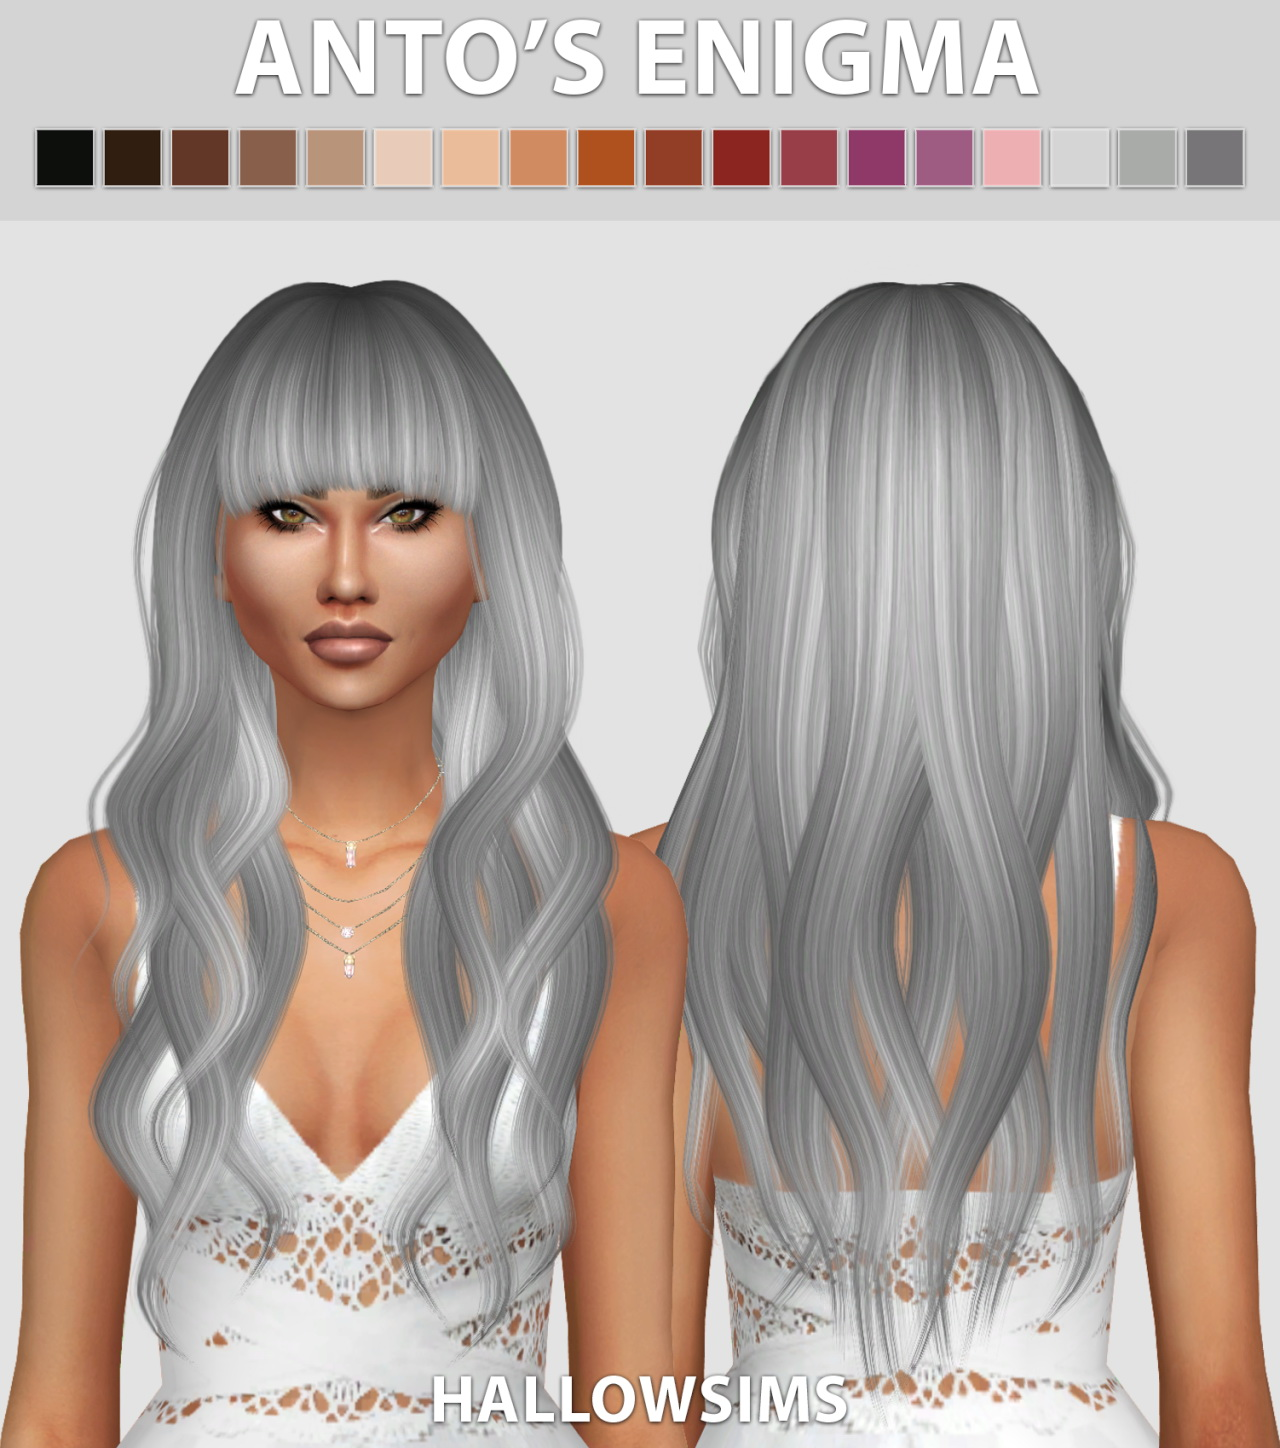 Sims 4 Hairs Hallow Sims Storm Hair | sims 4 hairs hallow ...